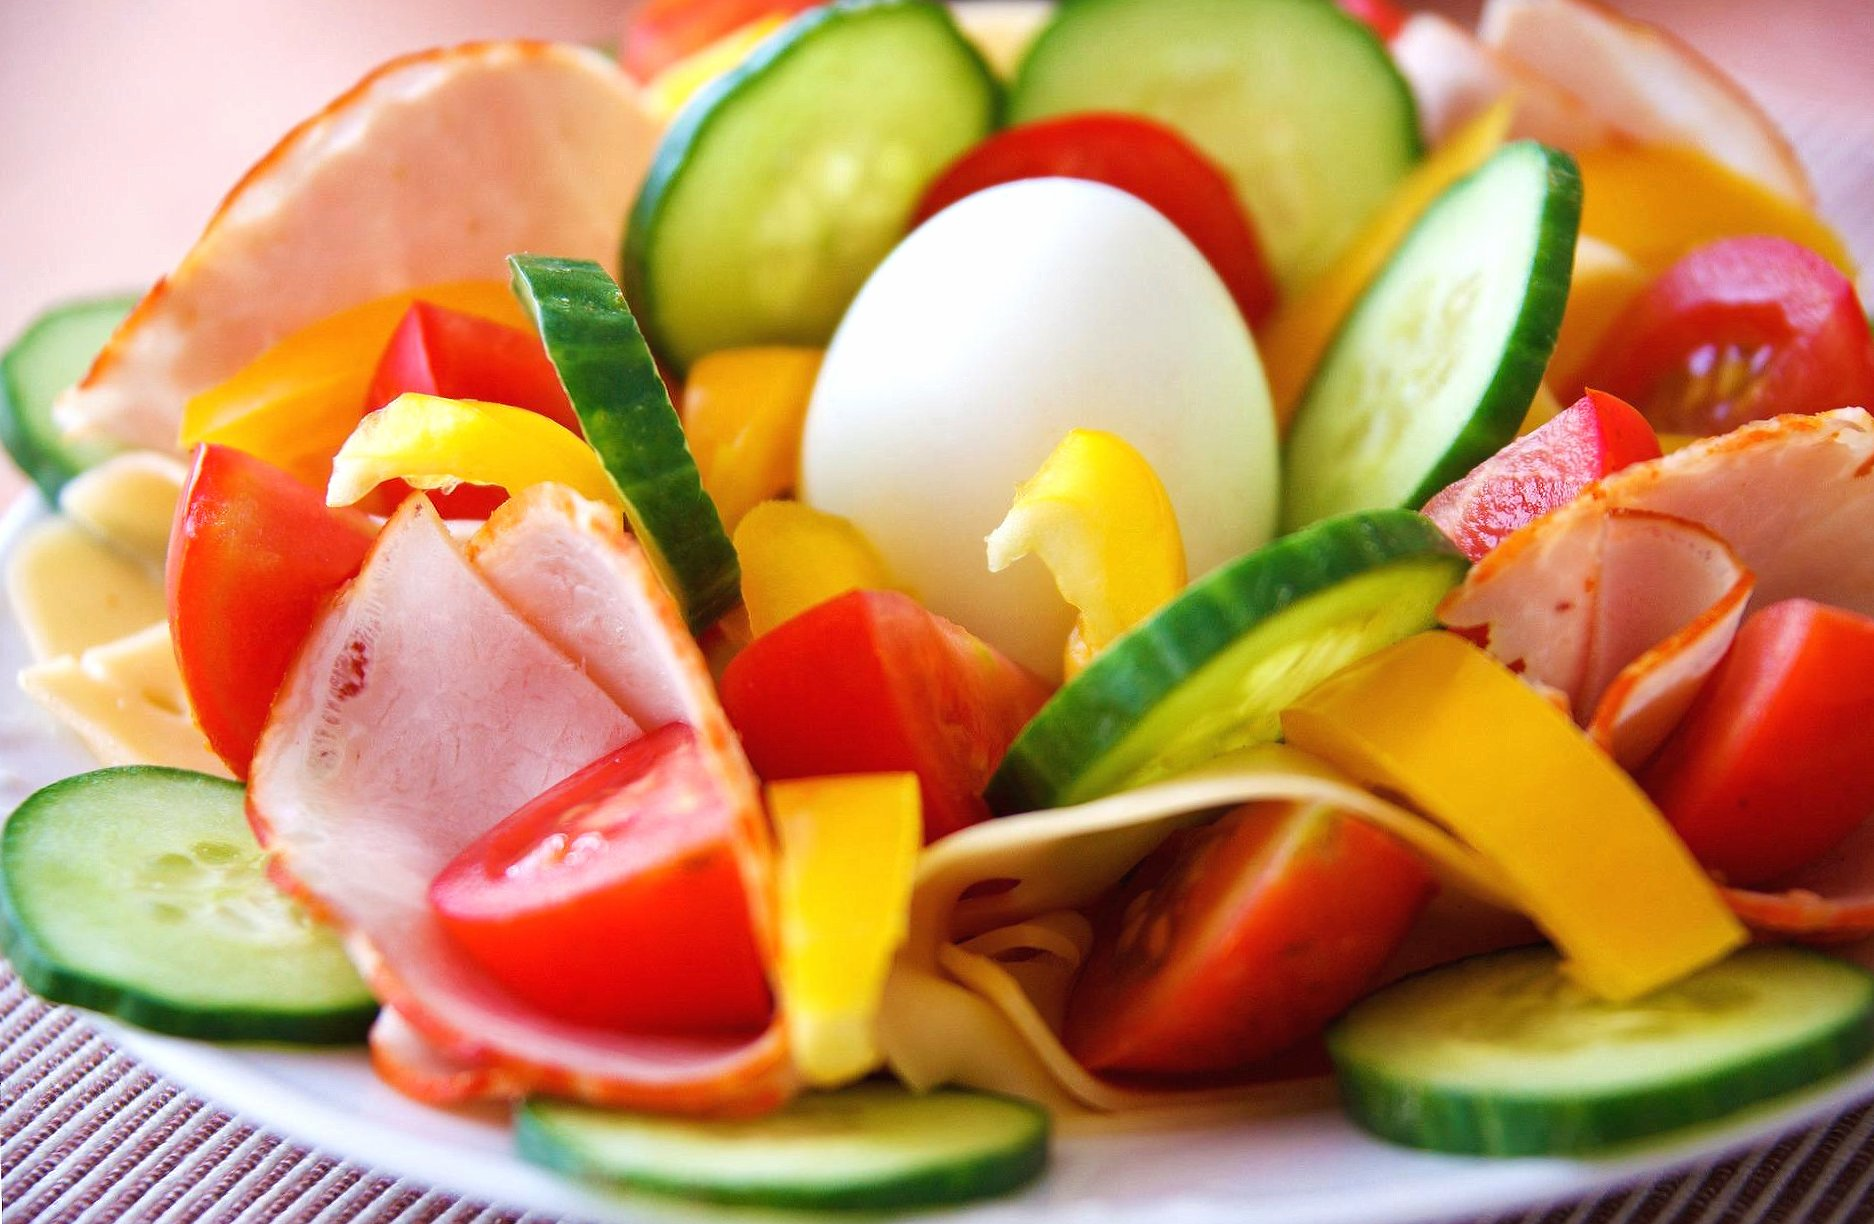 Egg and vegetables wallpapers HD quality